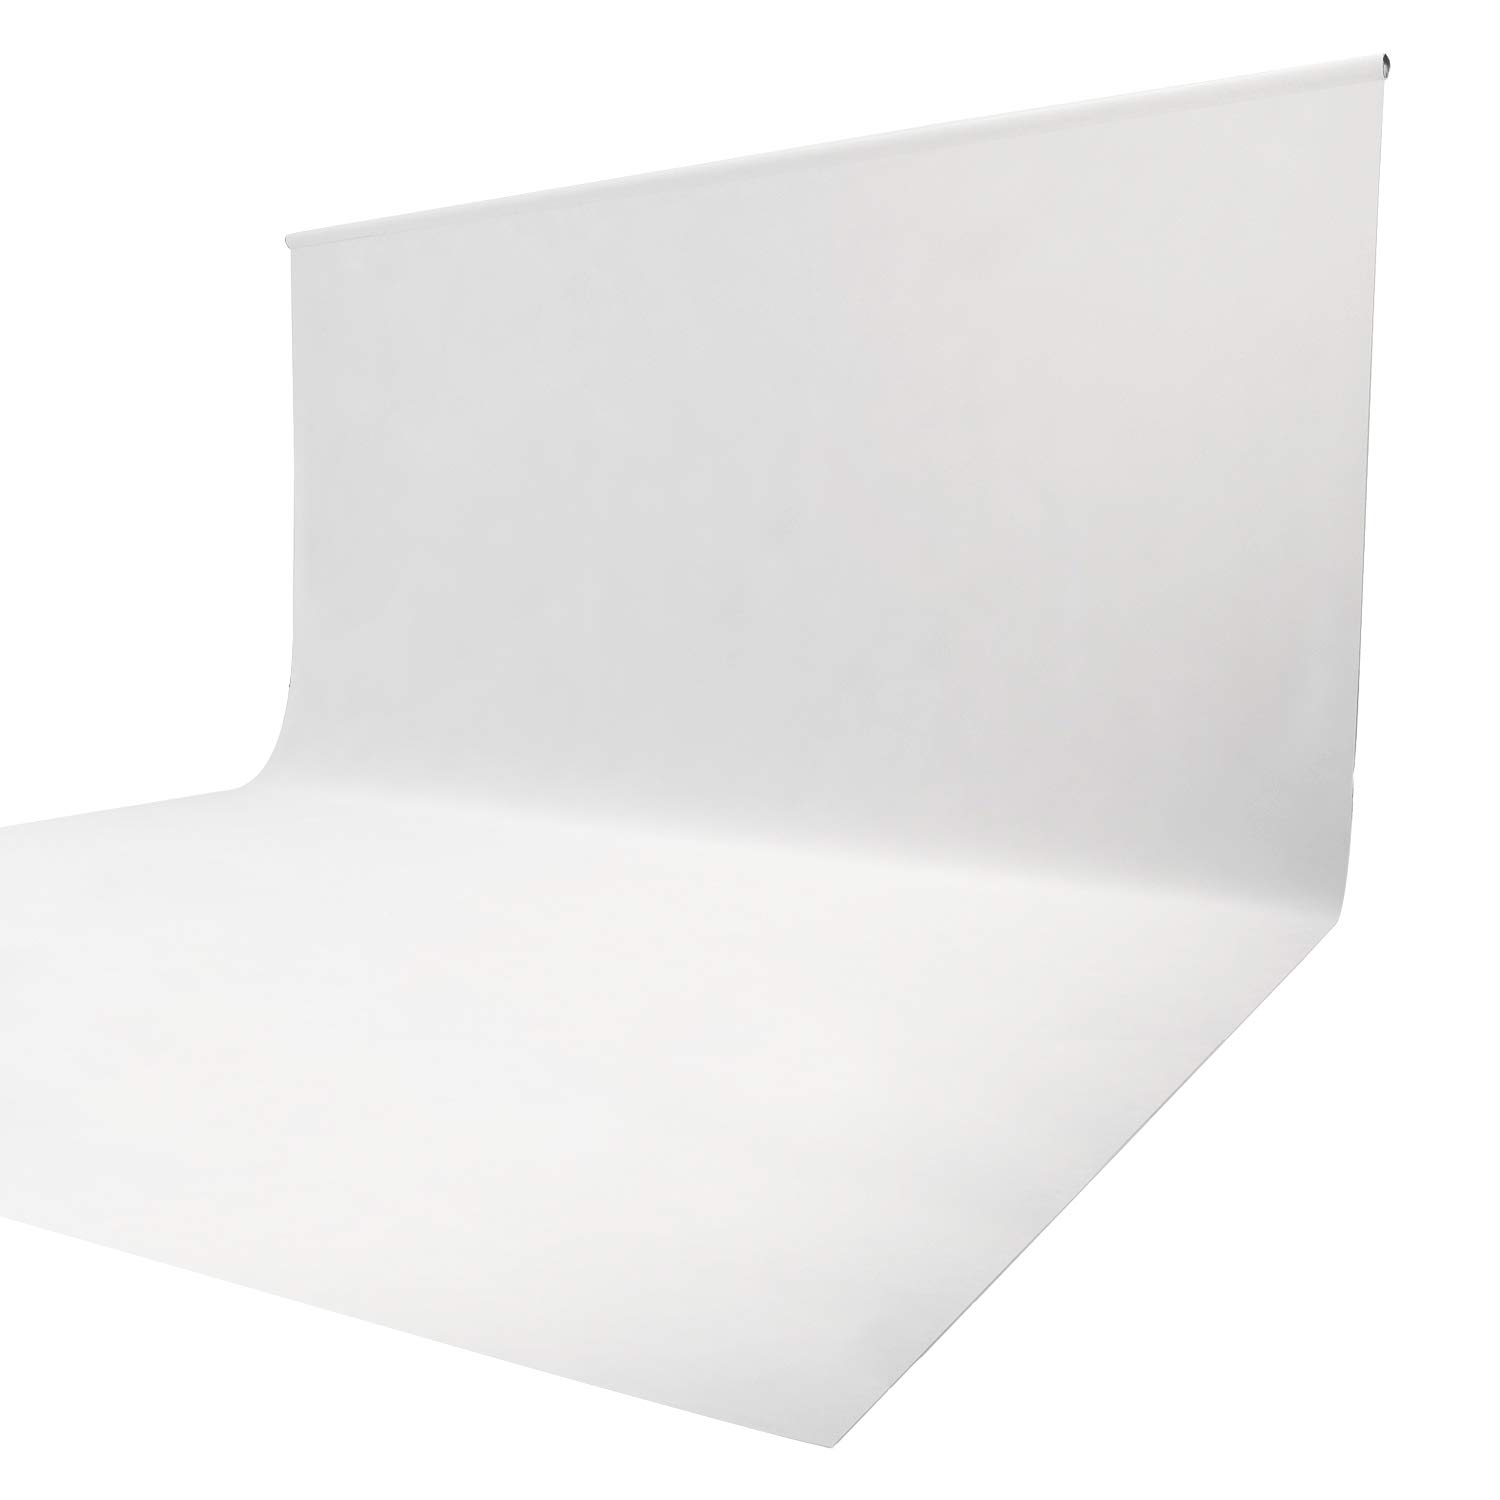 Issuntex 10X20 ft White Background Muslin Backdrop,Photo Studio,Collapsible High Density Screen for Video Photography and Television